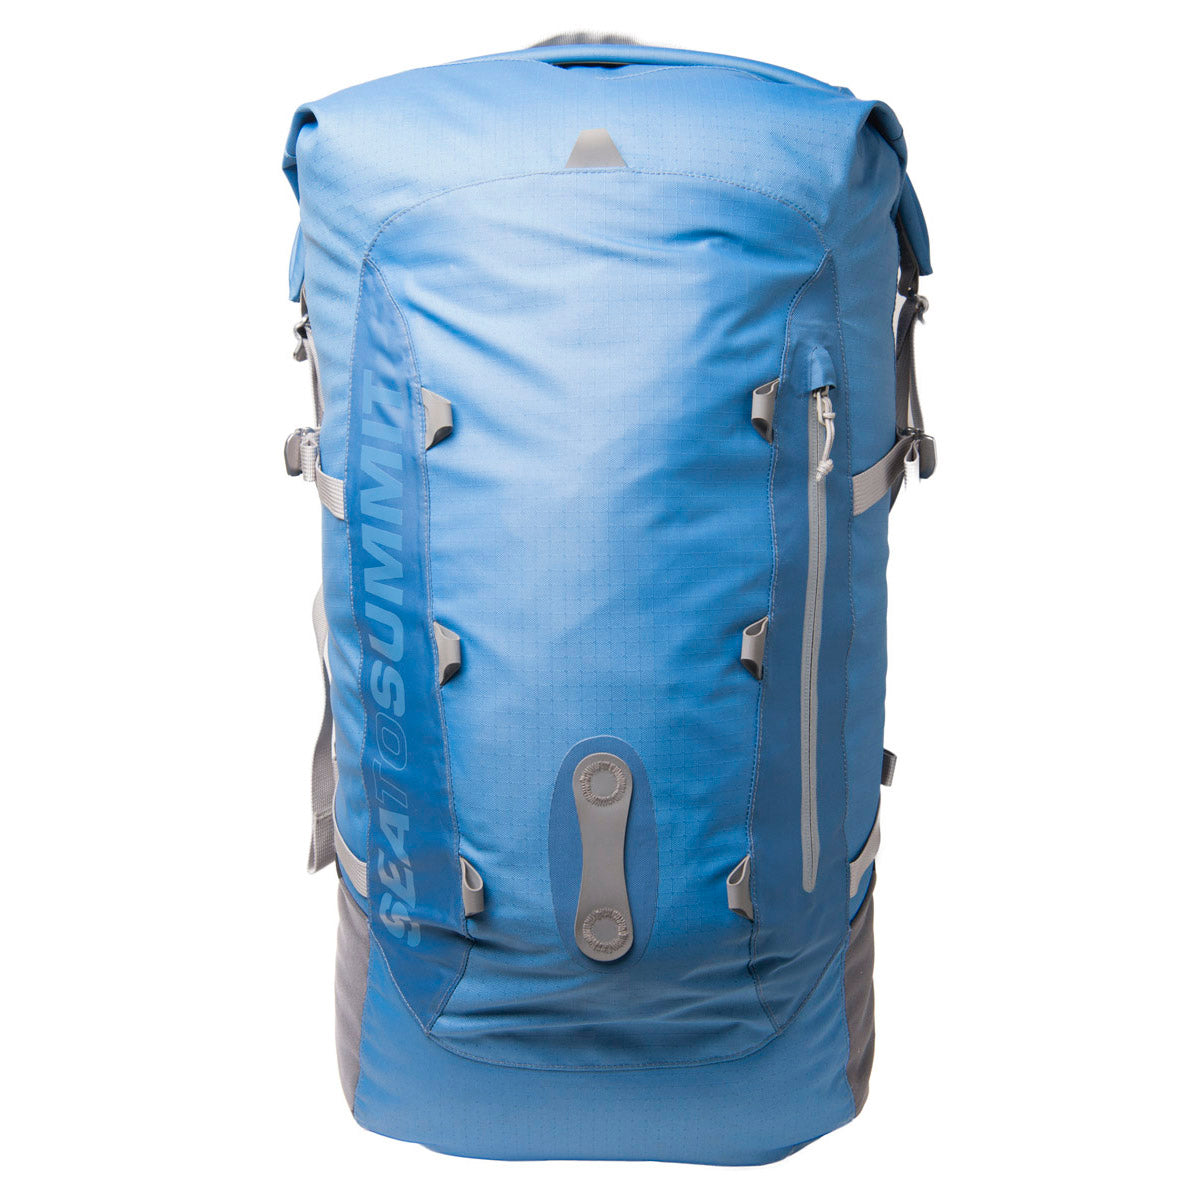 Flow 35L Drypack _ dry bag backpack _ blue